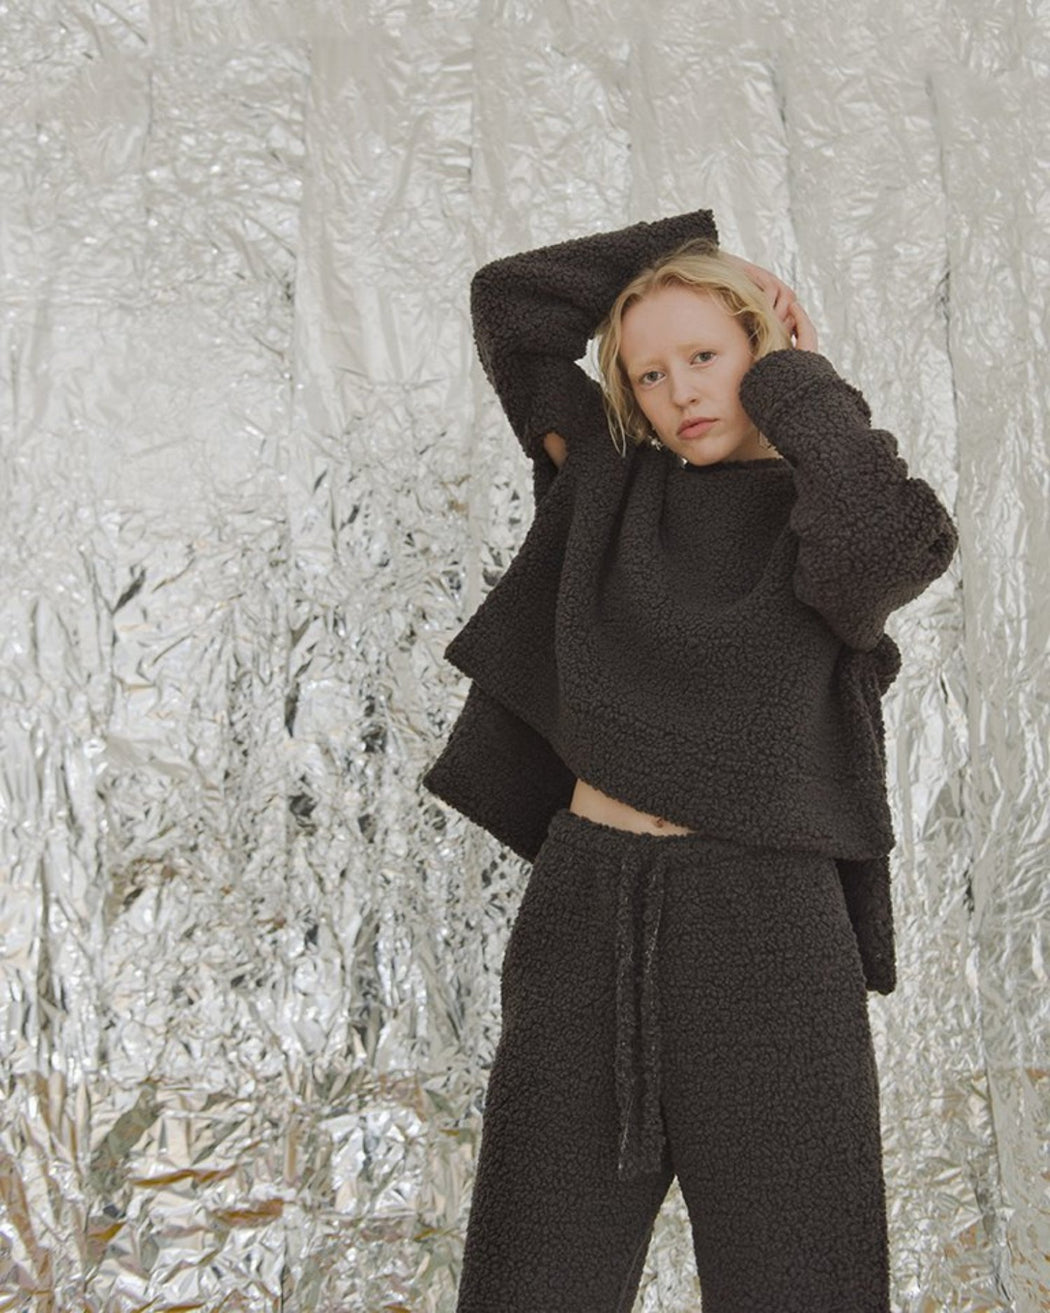 PRIORY:Bruna Sweater – Smoke Sherpa,ANOMIE